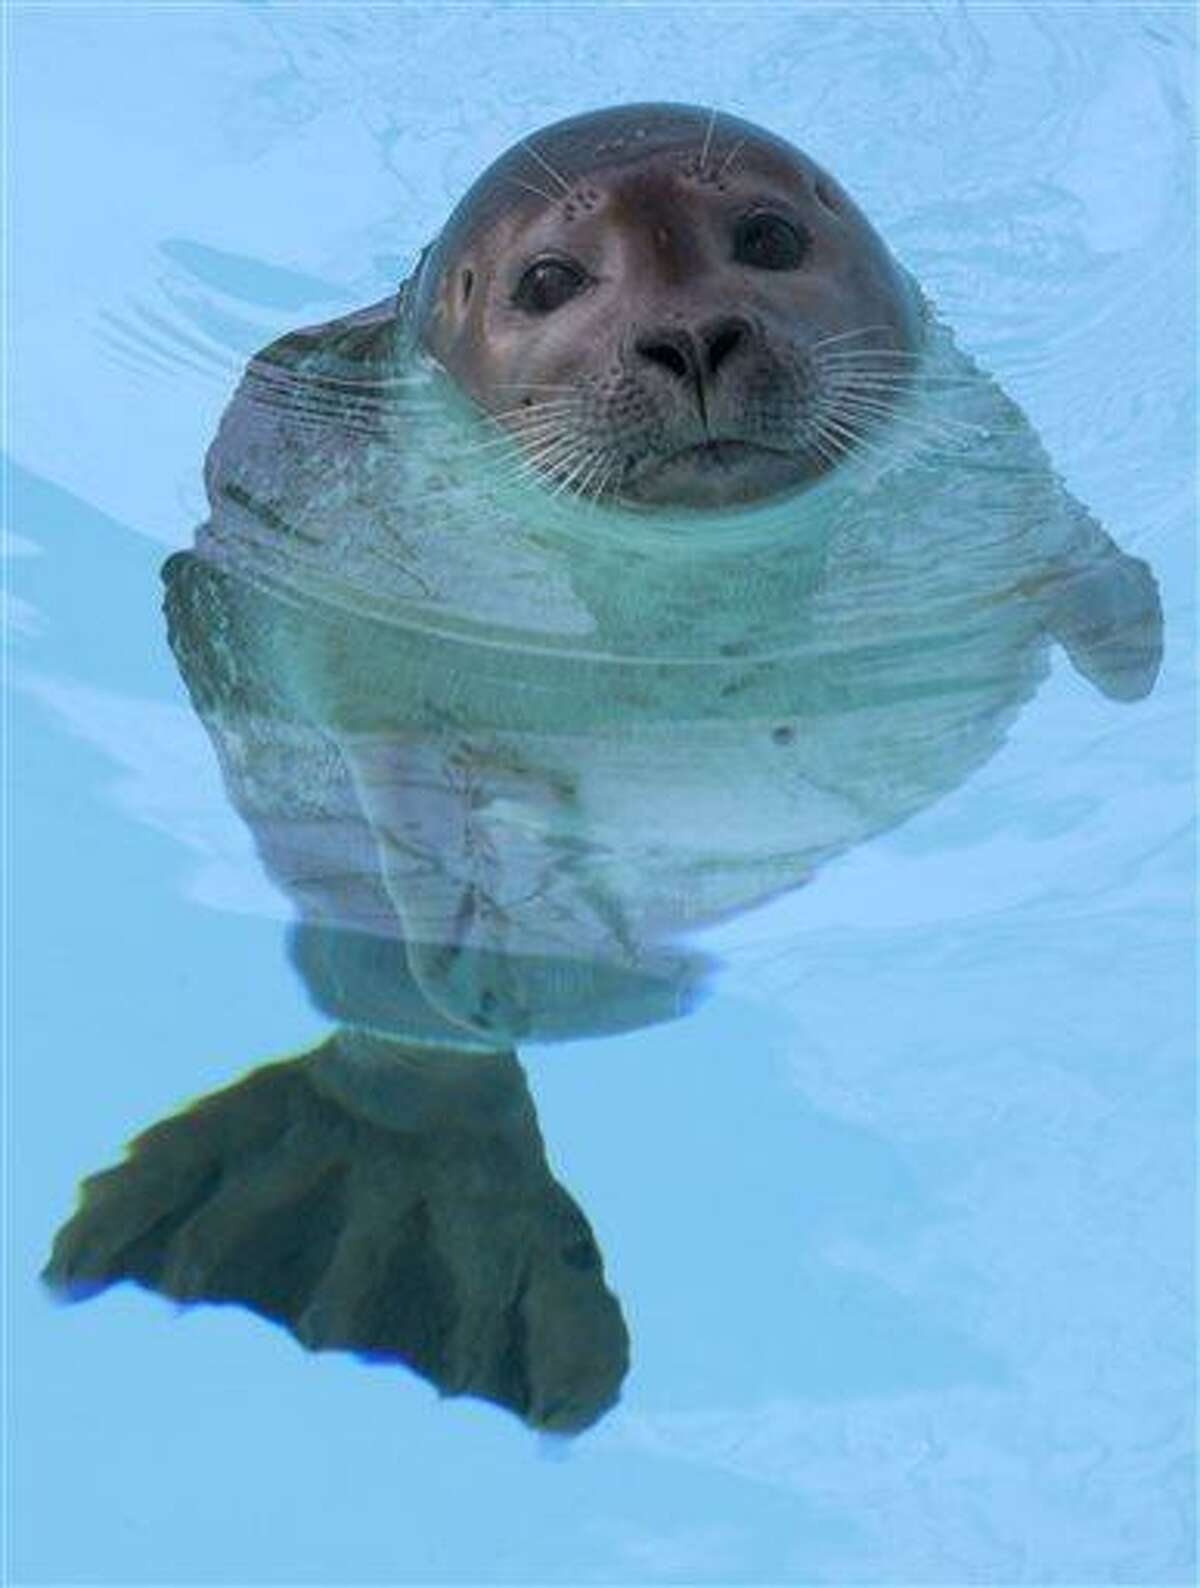 In this Wednesday, March 27, 2013 photo, an 8-month old female harbor seal, known as Pup 49, swims in a pool at Mystic Aquarium in Mystic, Conn. The pup, rescued in July 2012 on a beach in Plymouth, Mass., was taken to Mystic for treatment, where veterinarians amputated one of her two hind flippers to prevent an infection from spreading throughout her body. (AP Photo/Rodrique Ngowi)